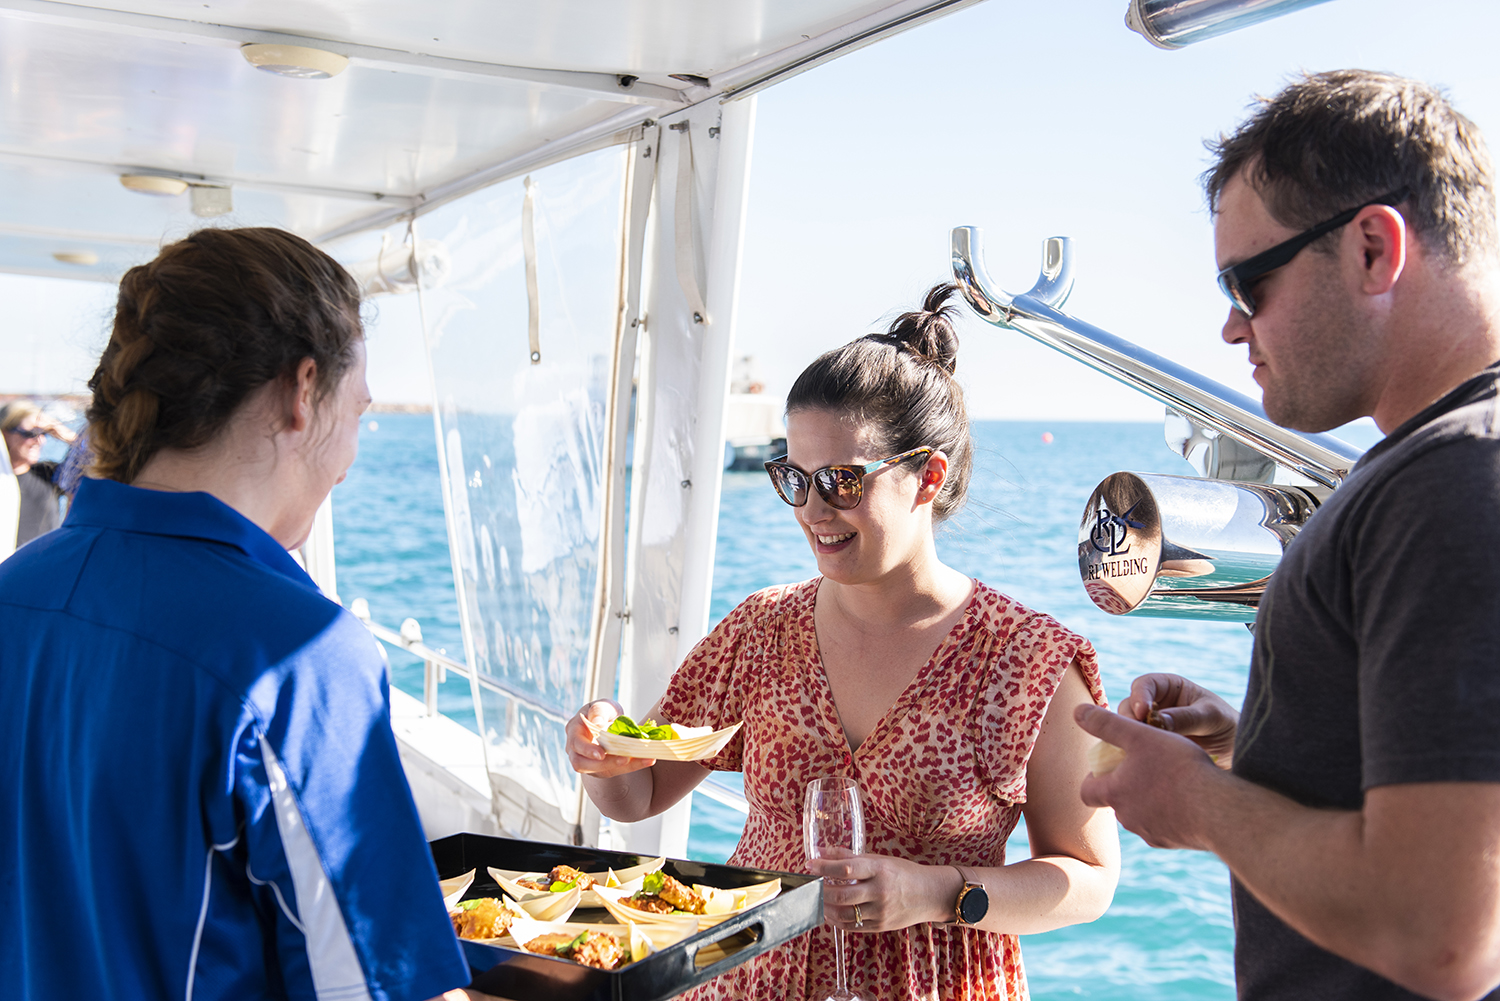 Broome Sunset, Seafood & Pearling Cruise